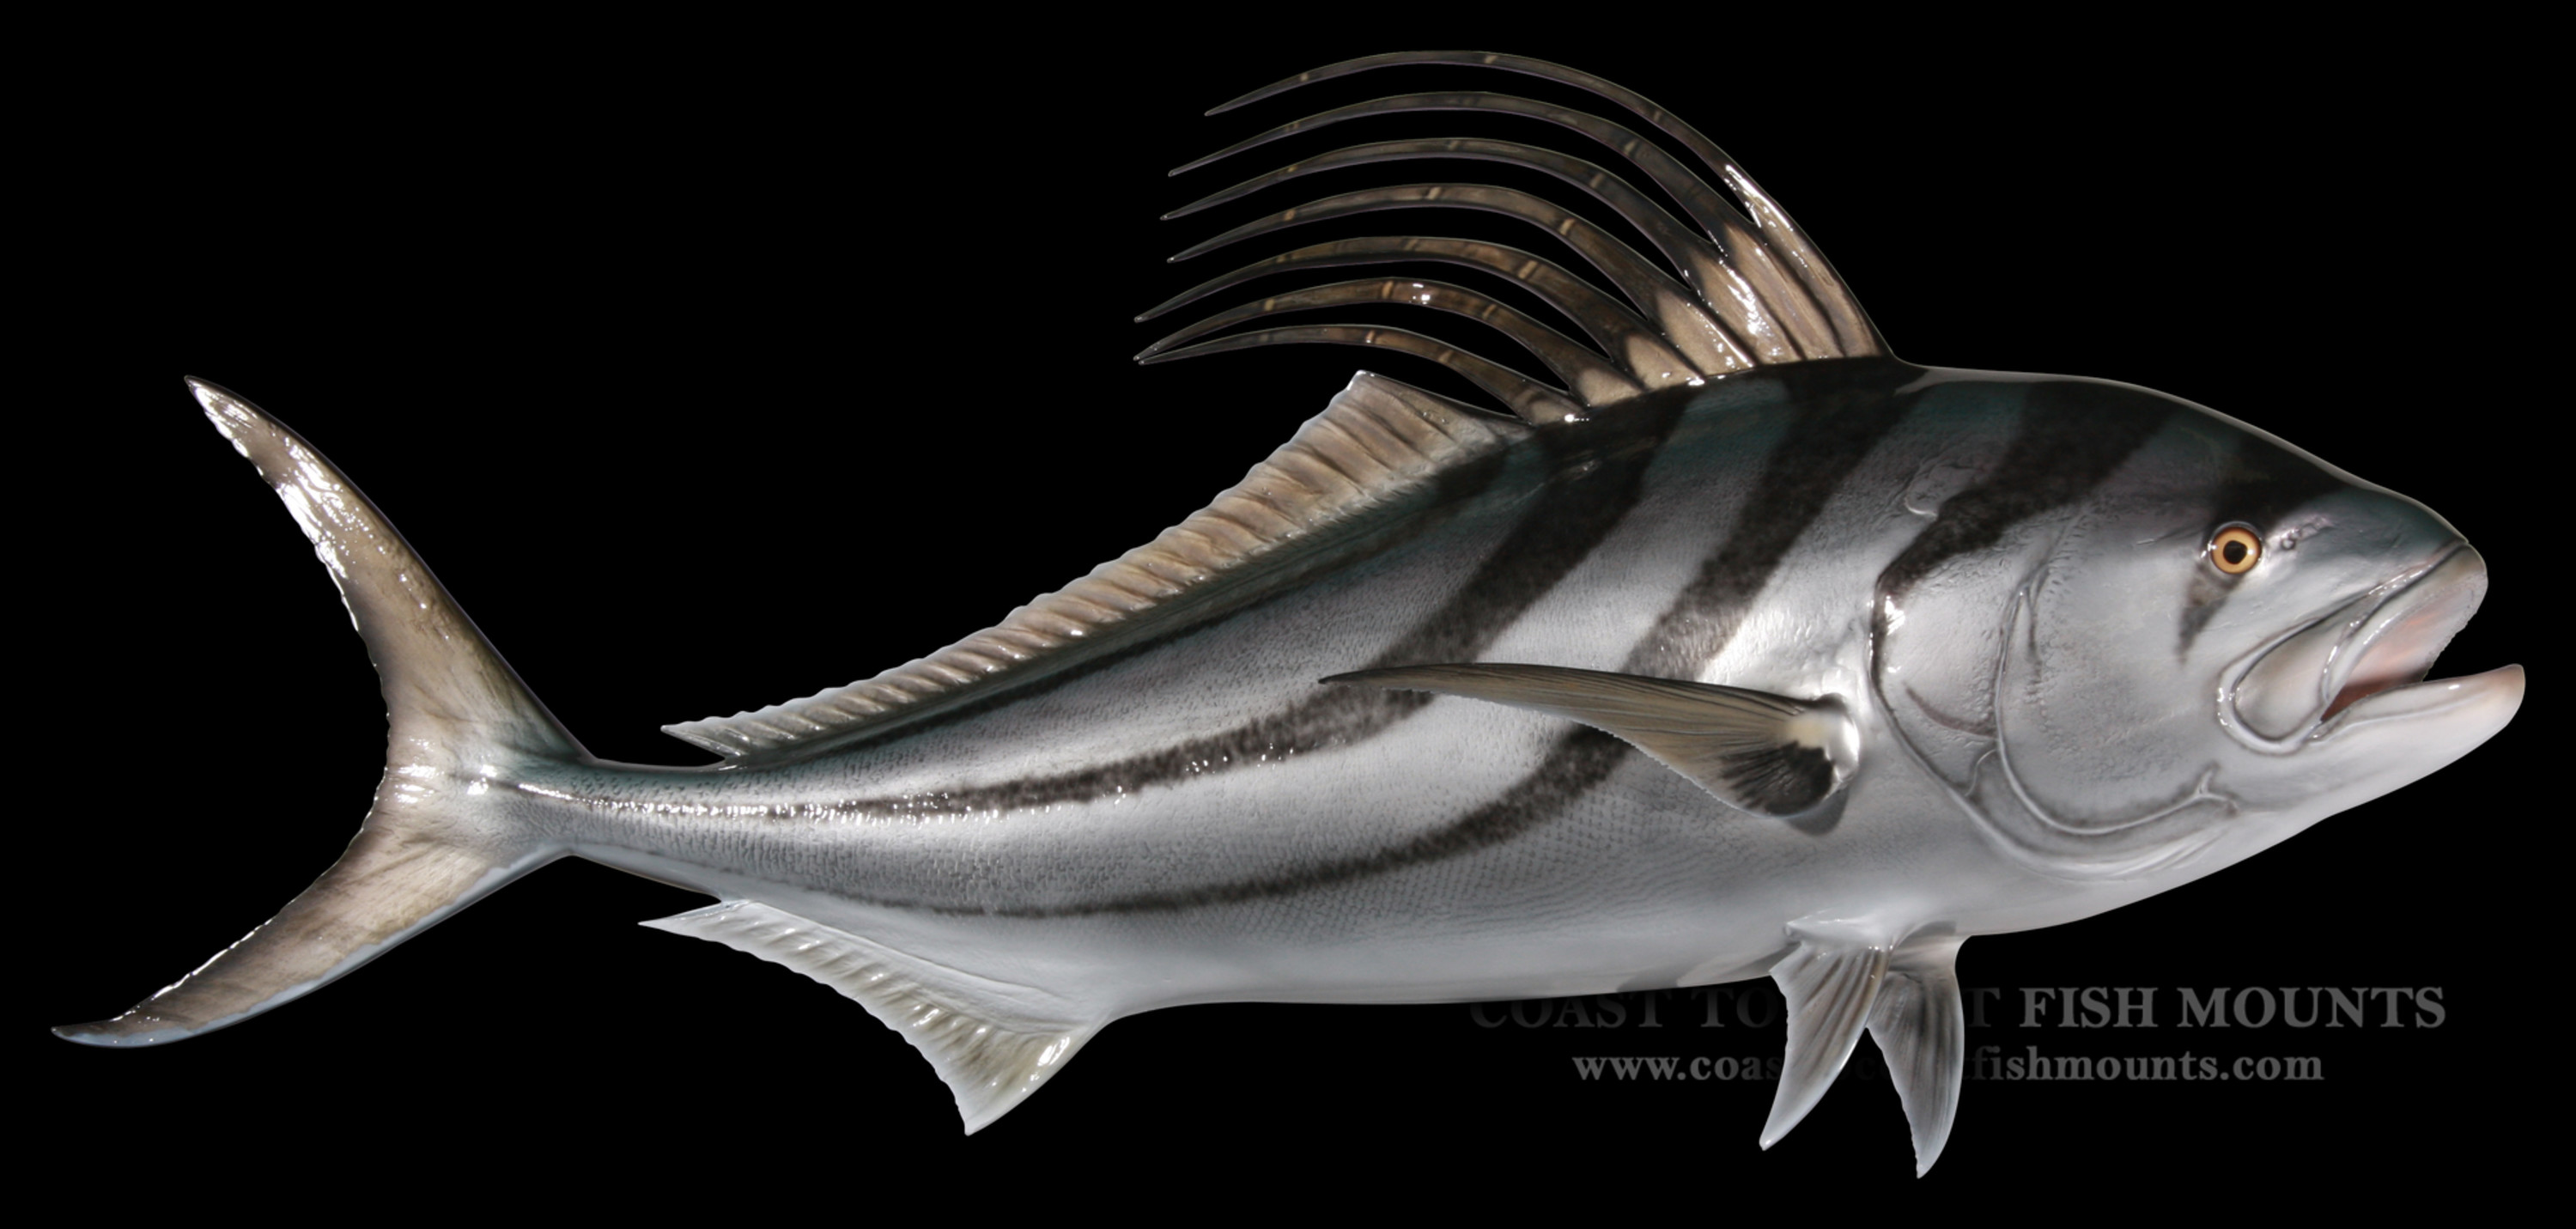 Roosterfish fish mount and fish replicas coast to coast for Replica fish mounts